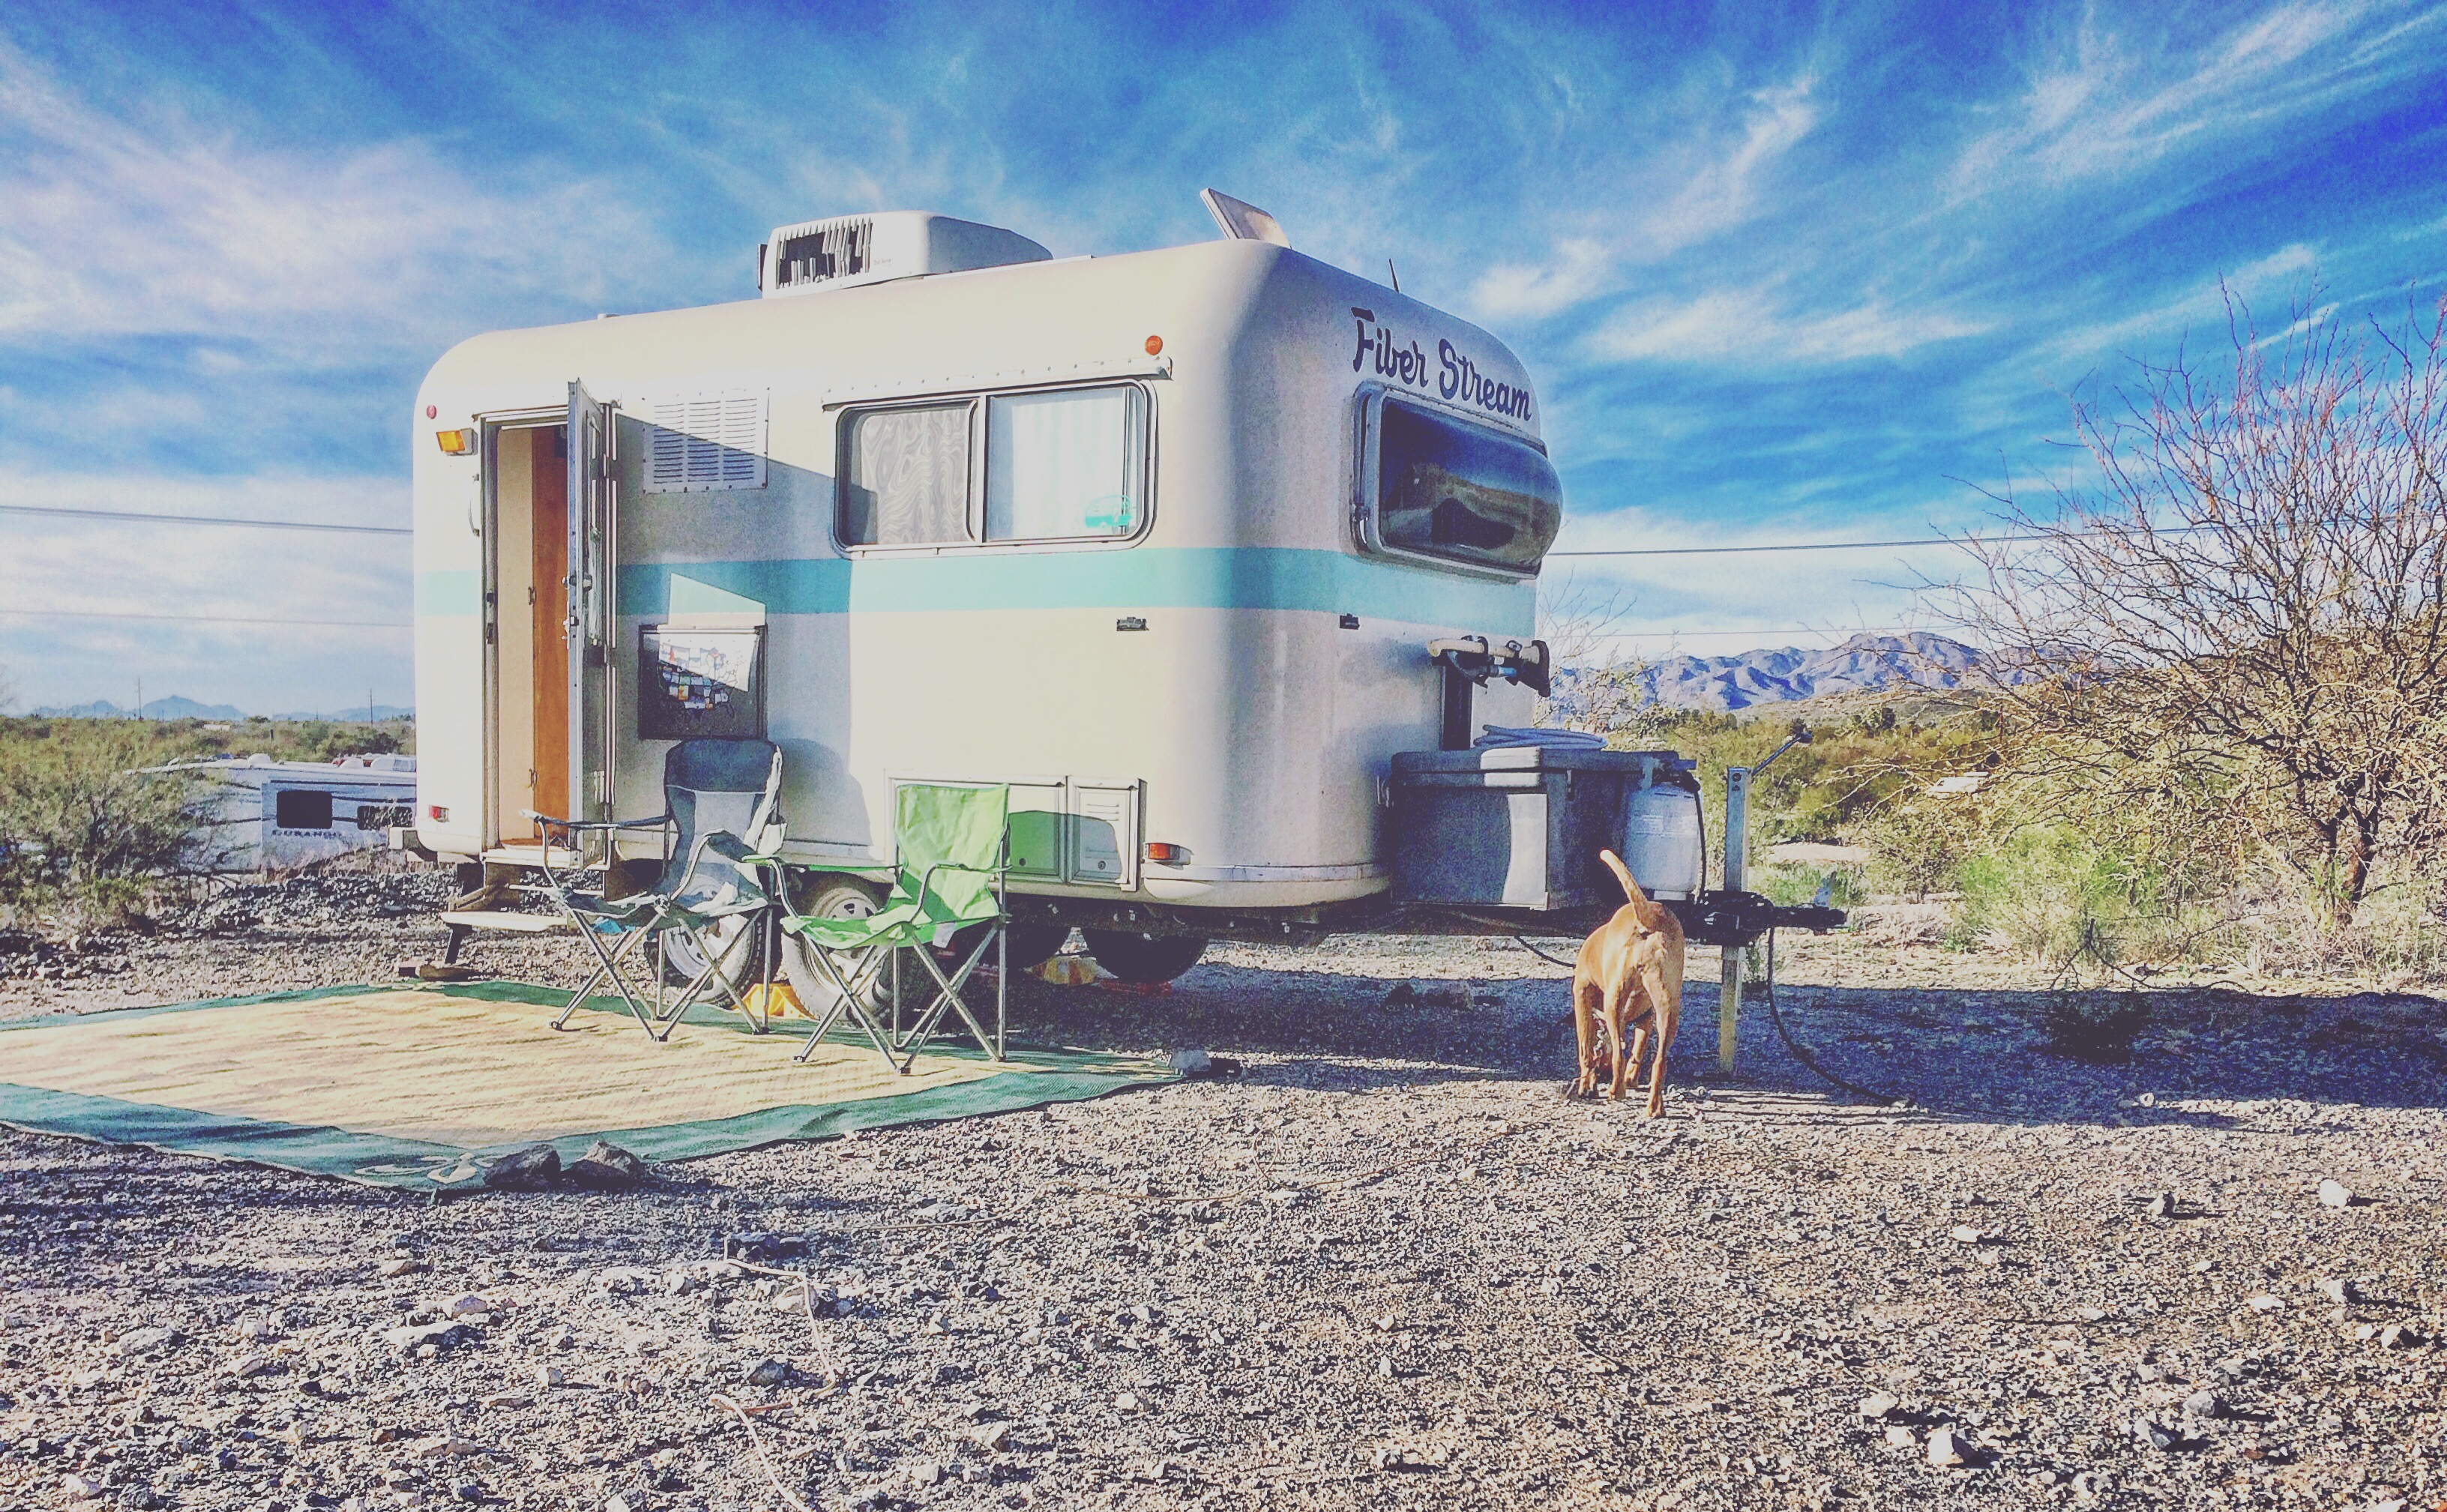 """Popular Boondocking Site Closed, Citing """"Gov't Has Their Own Rules"""""""